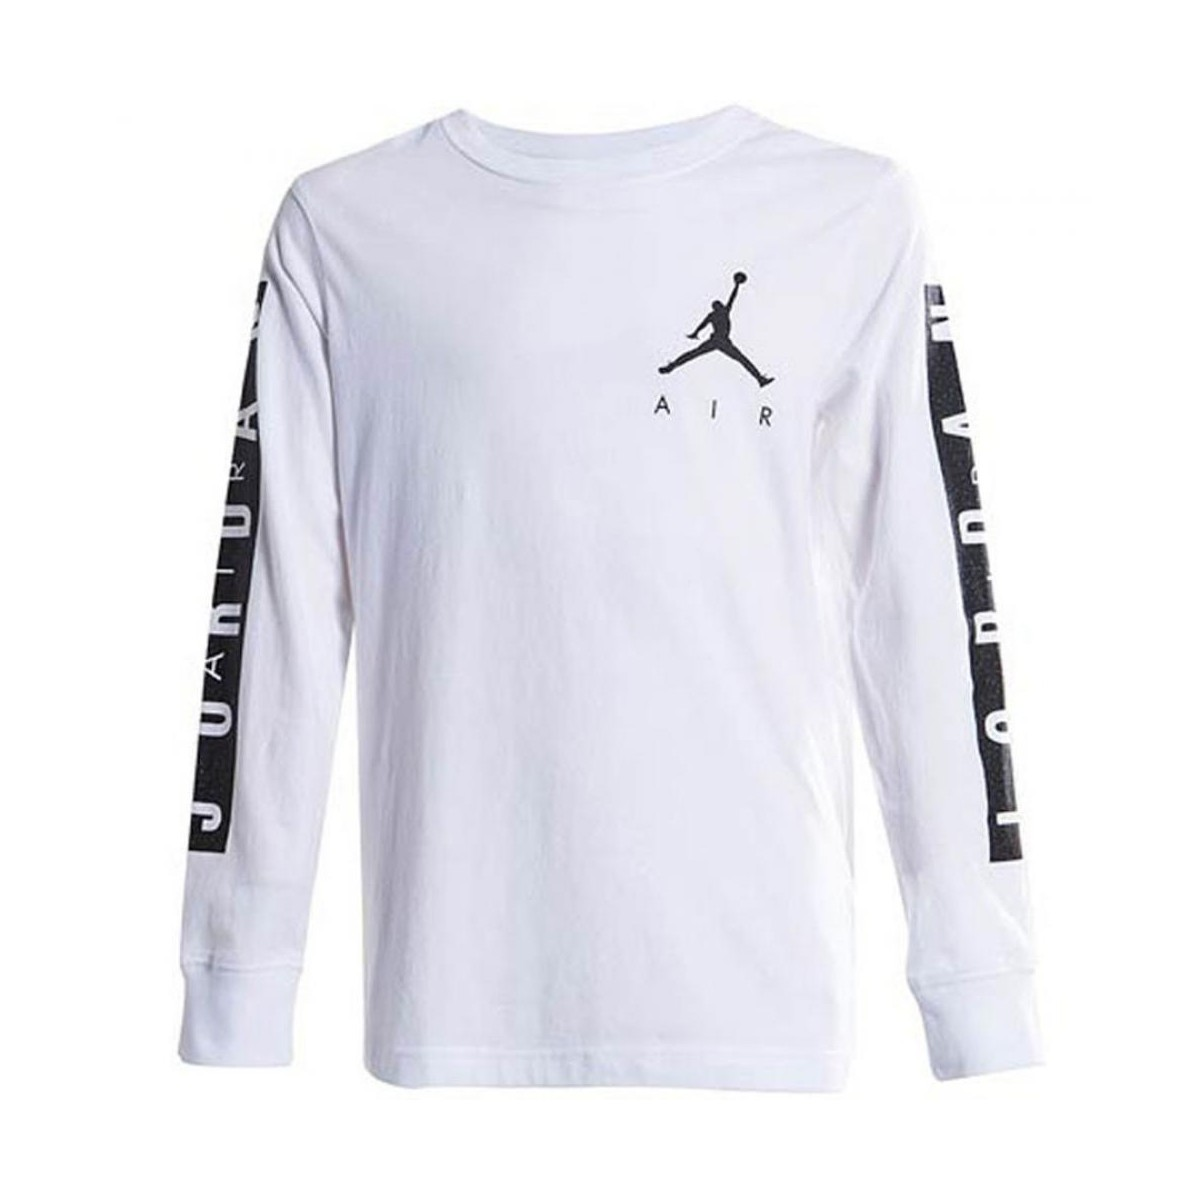 Junior Tee Cement Shirt Jordan Print kiXZOPu